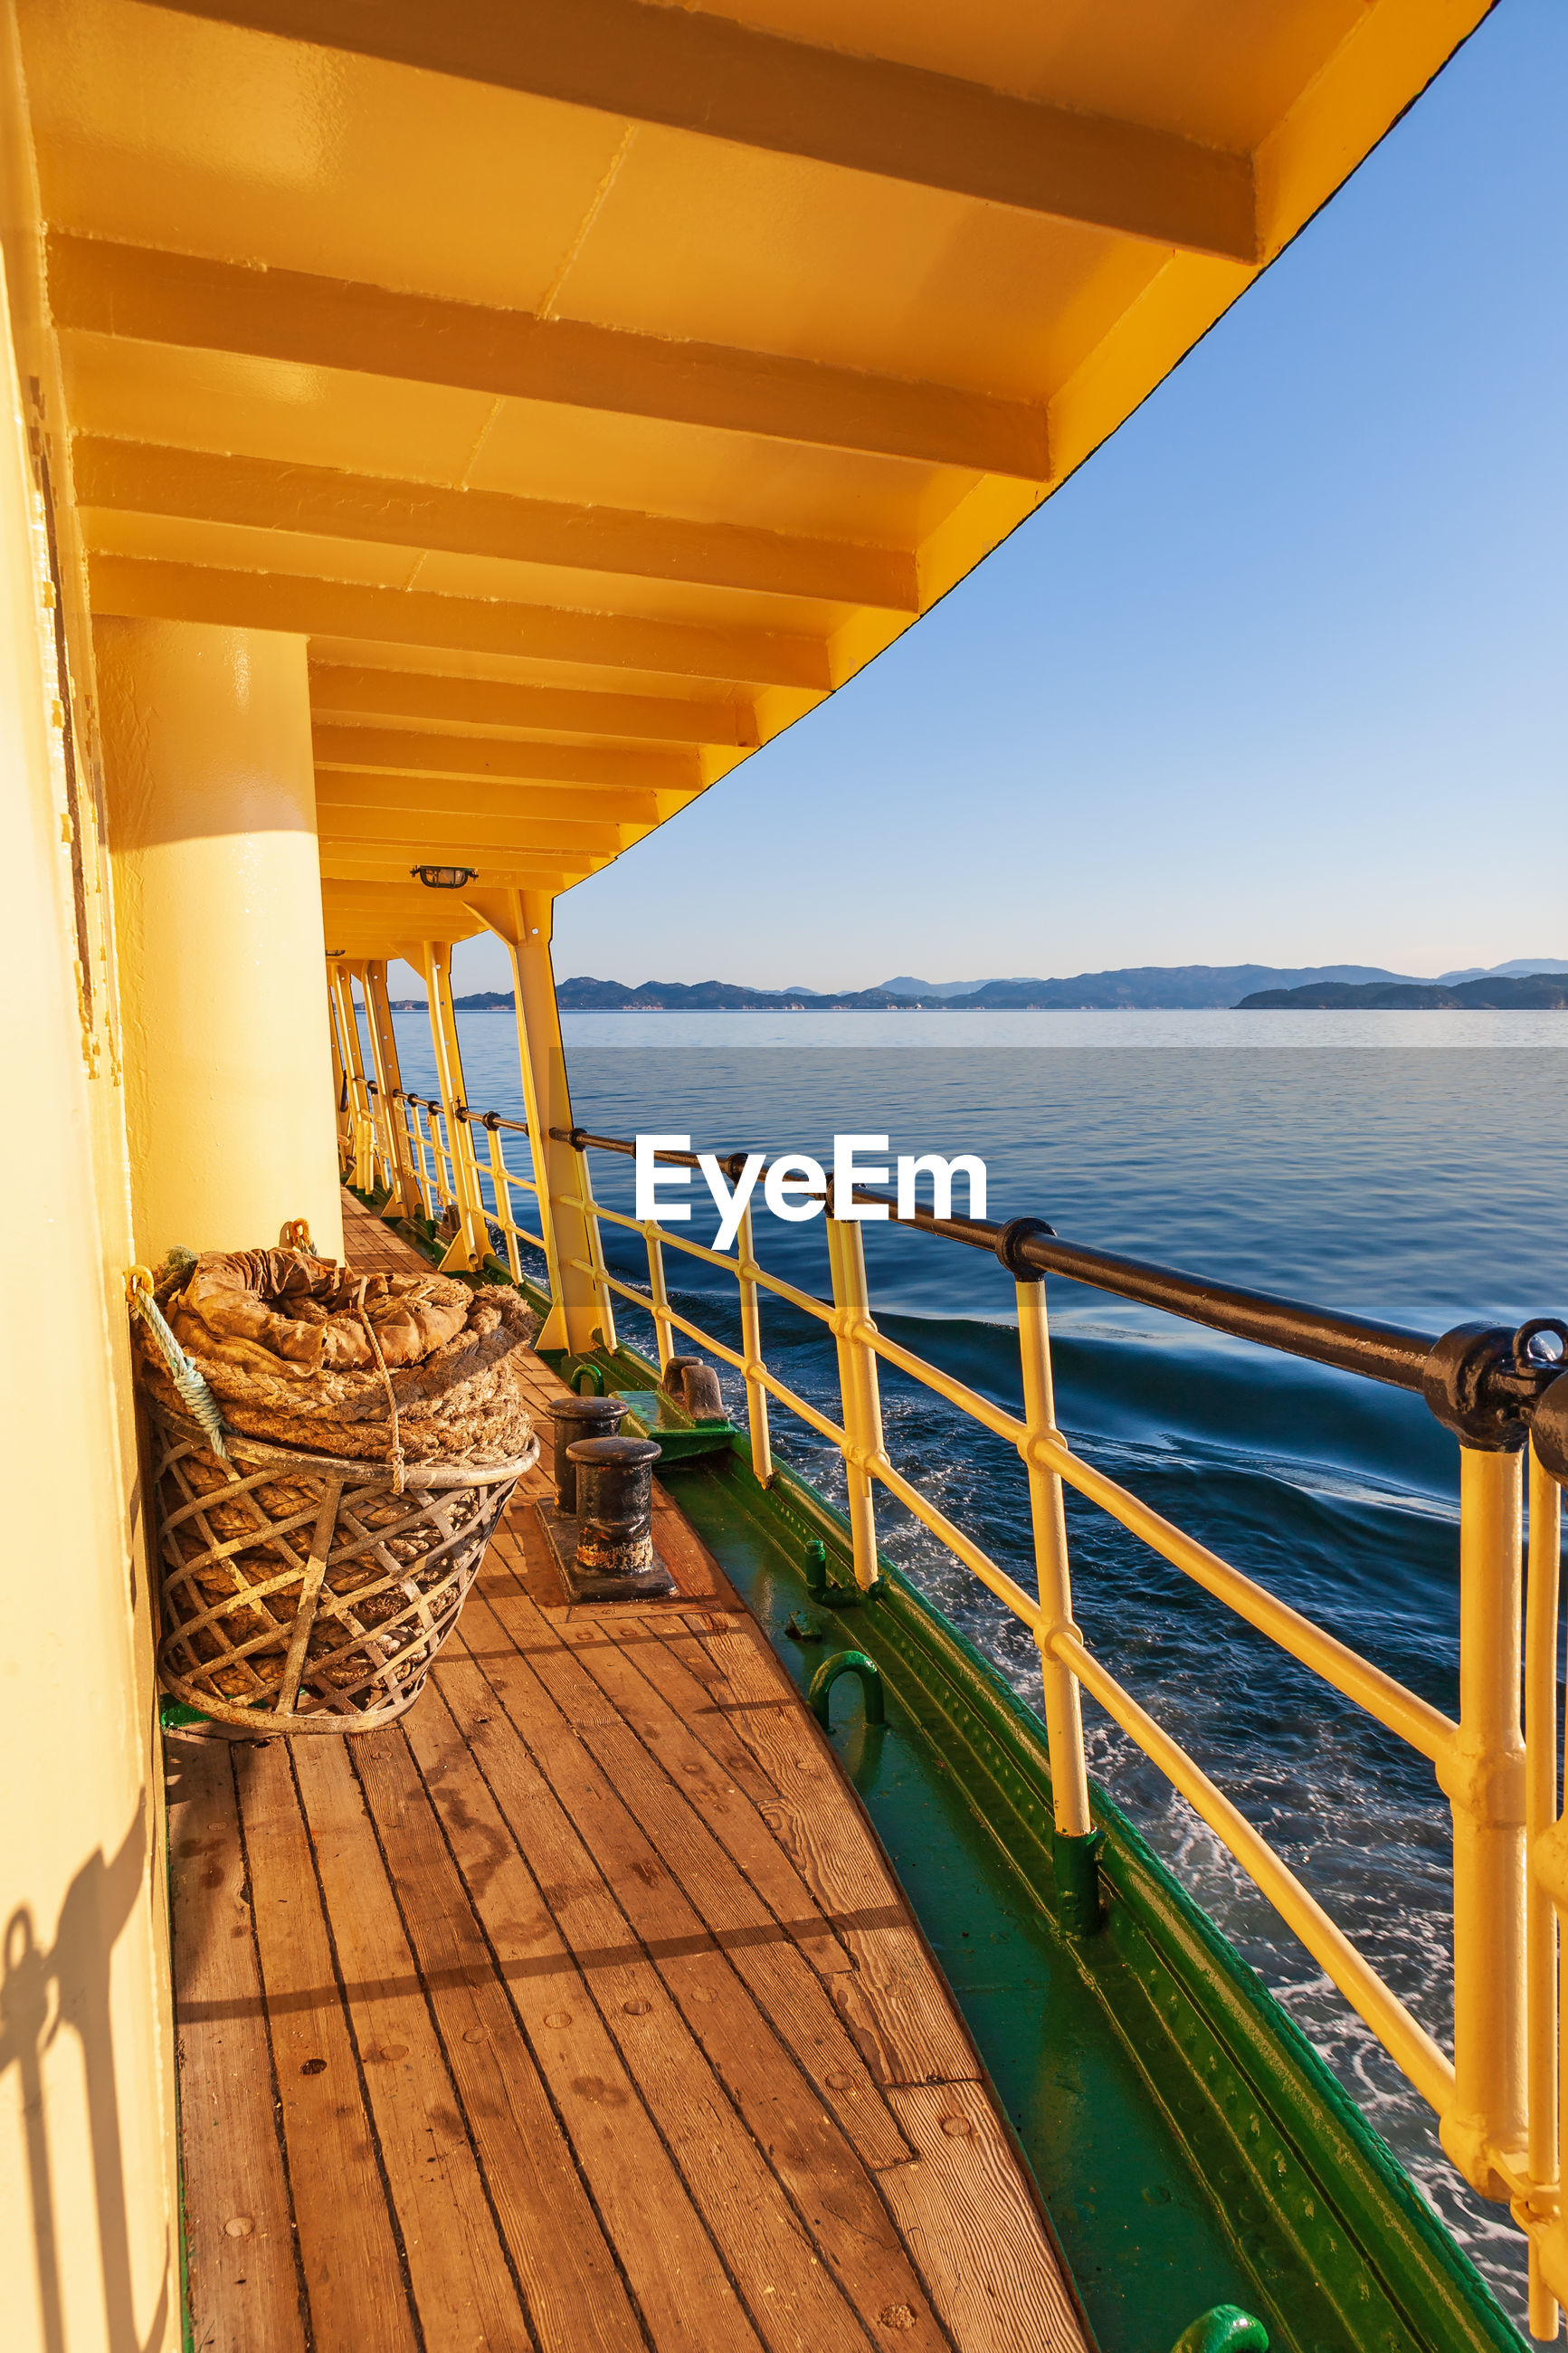 SCENIC VIEW OF SEA AGAINST SKY SEEN FROM WOODEN PIER